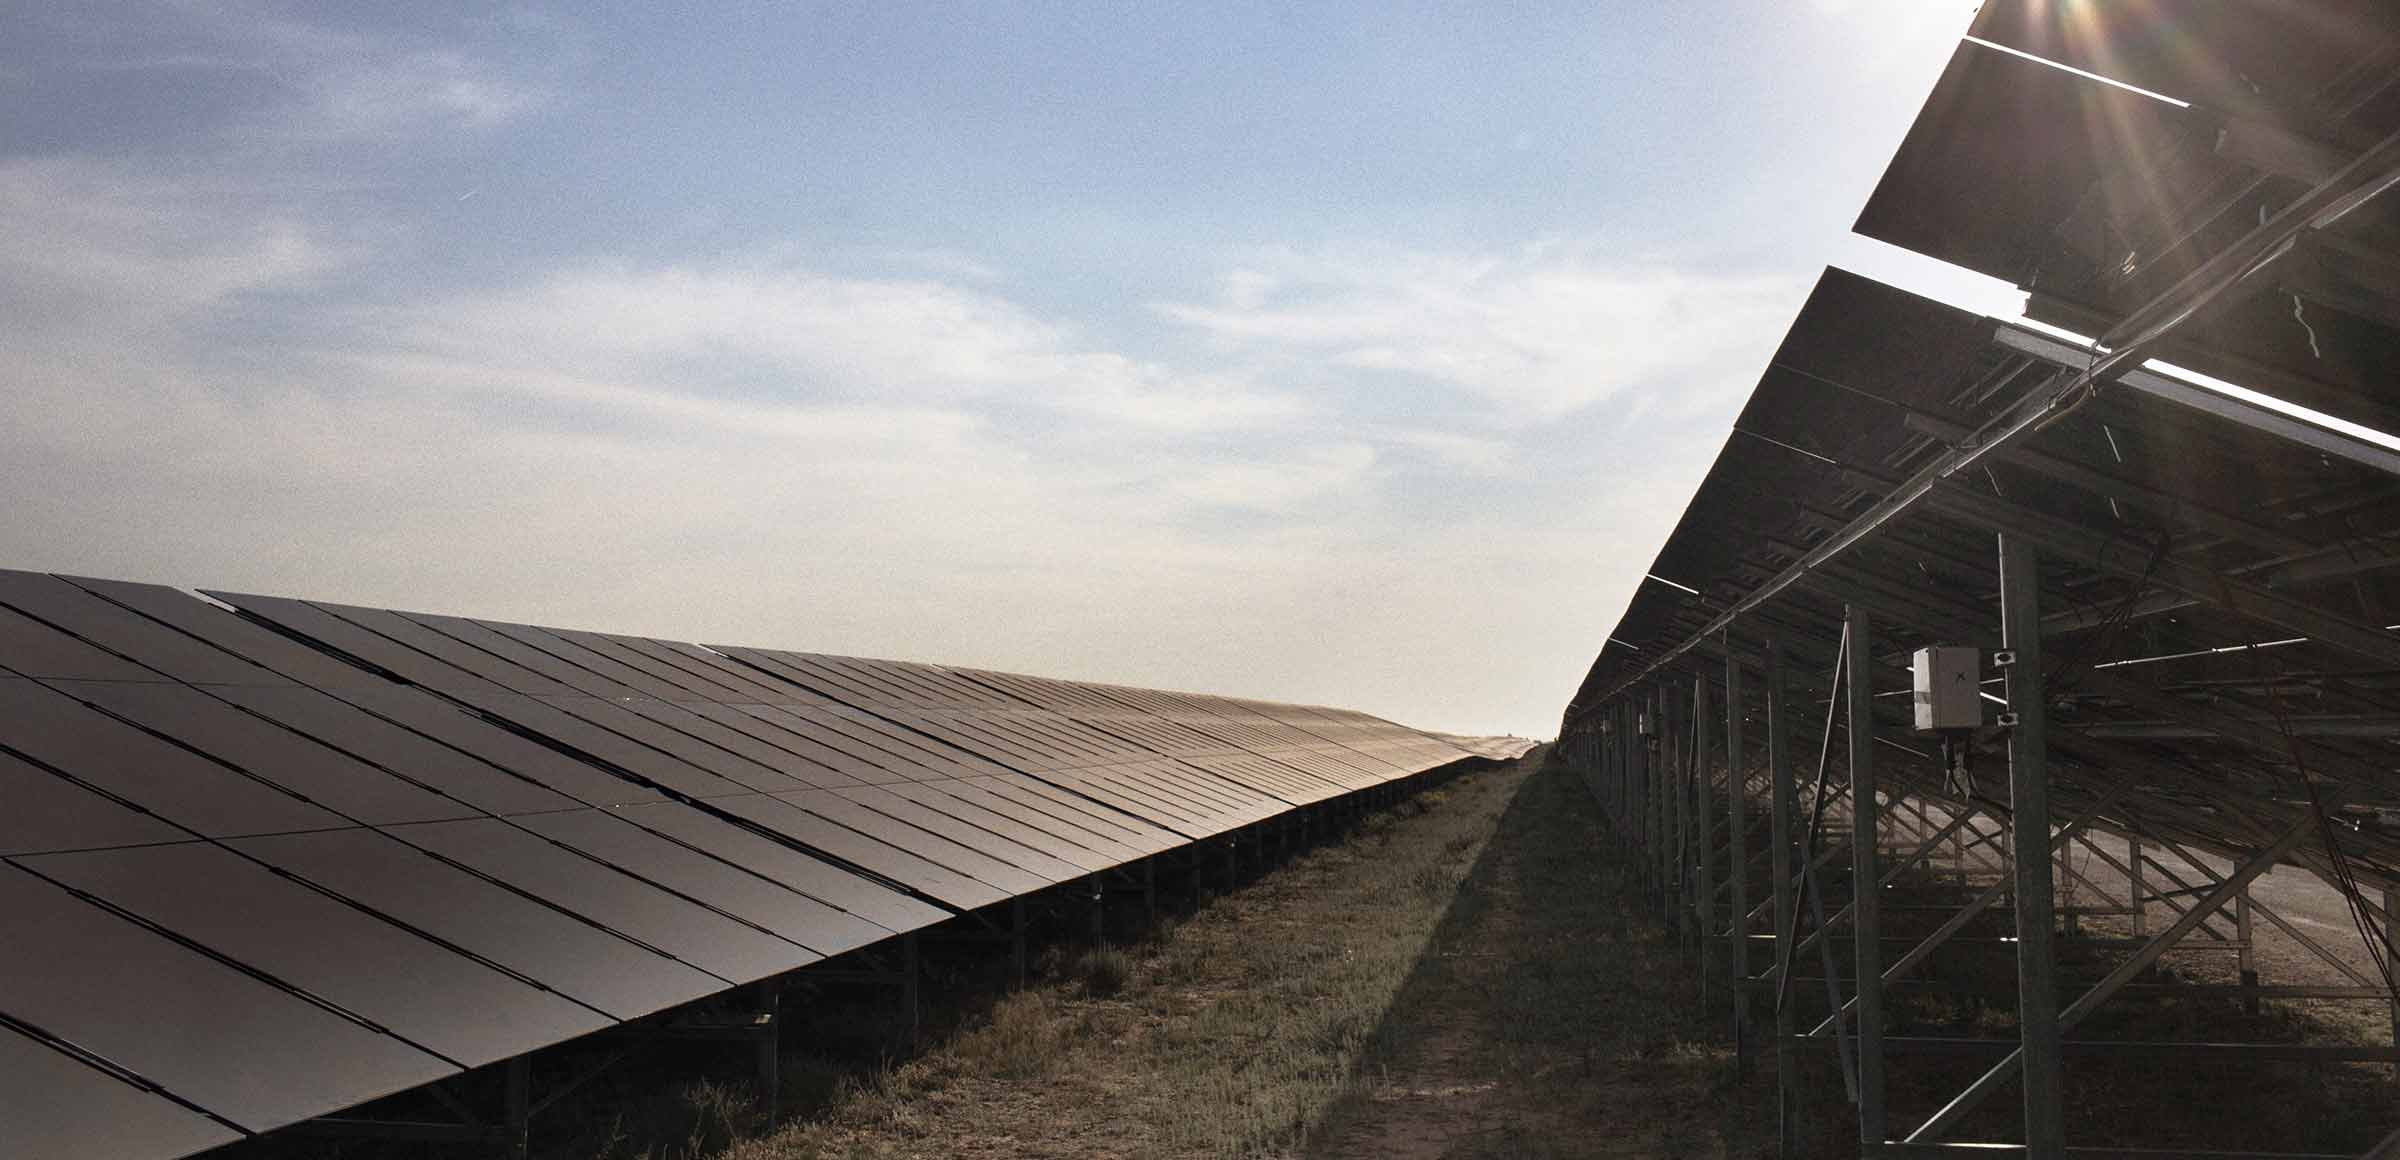 Heading to 2030: the future of Africa\u2019s renewables has yet to be written